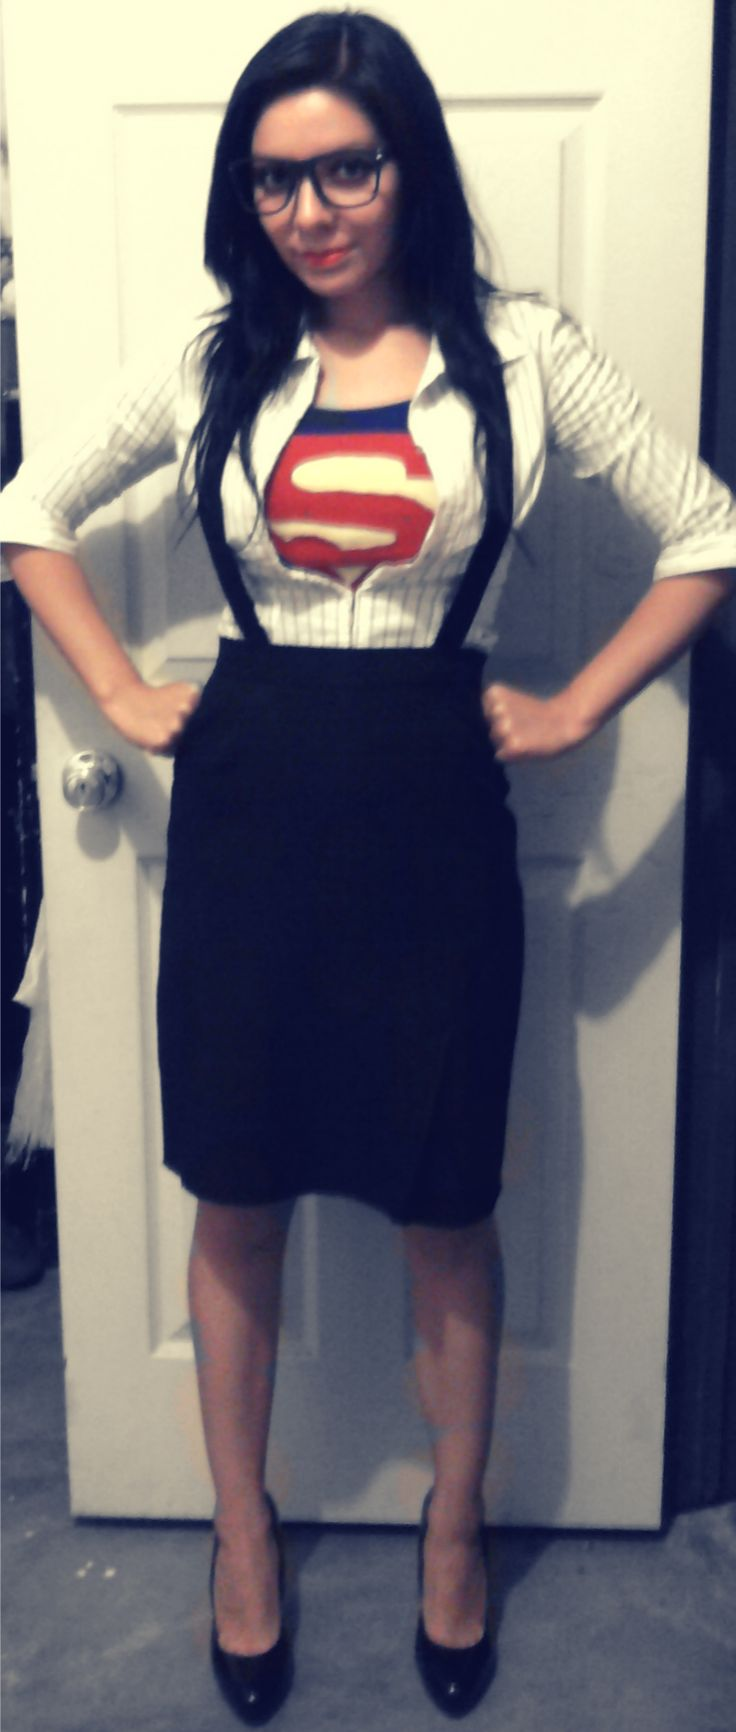 melyjuku clark kent superman easy costumesamazing costumeshalloween - Halloween Costume Ideas For Women Cheap And Easy